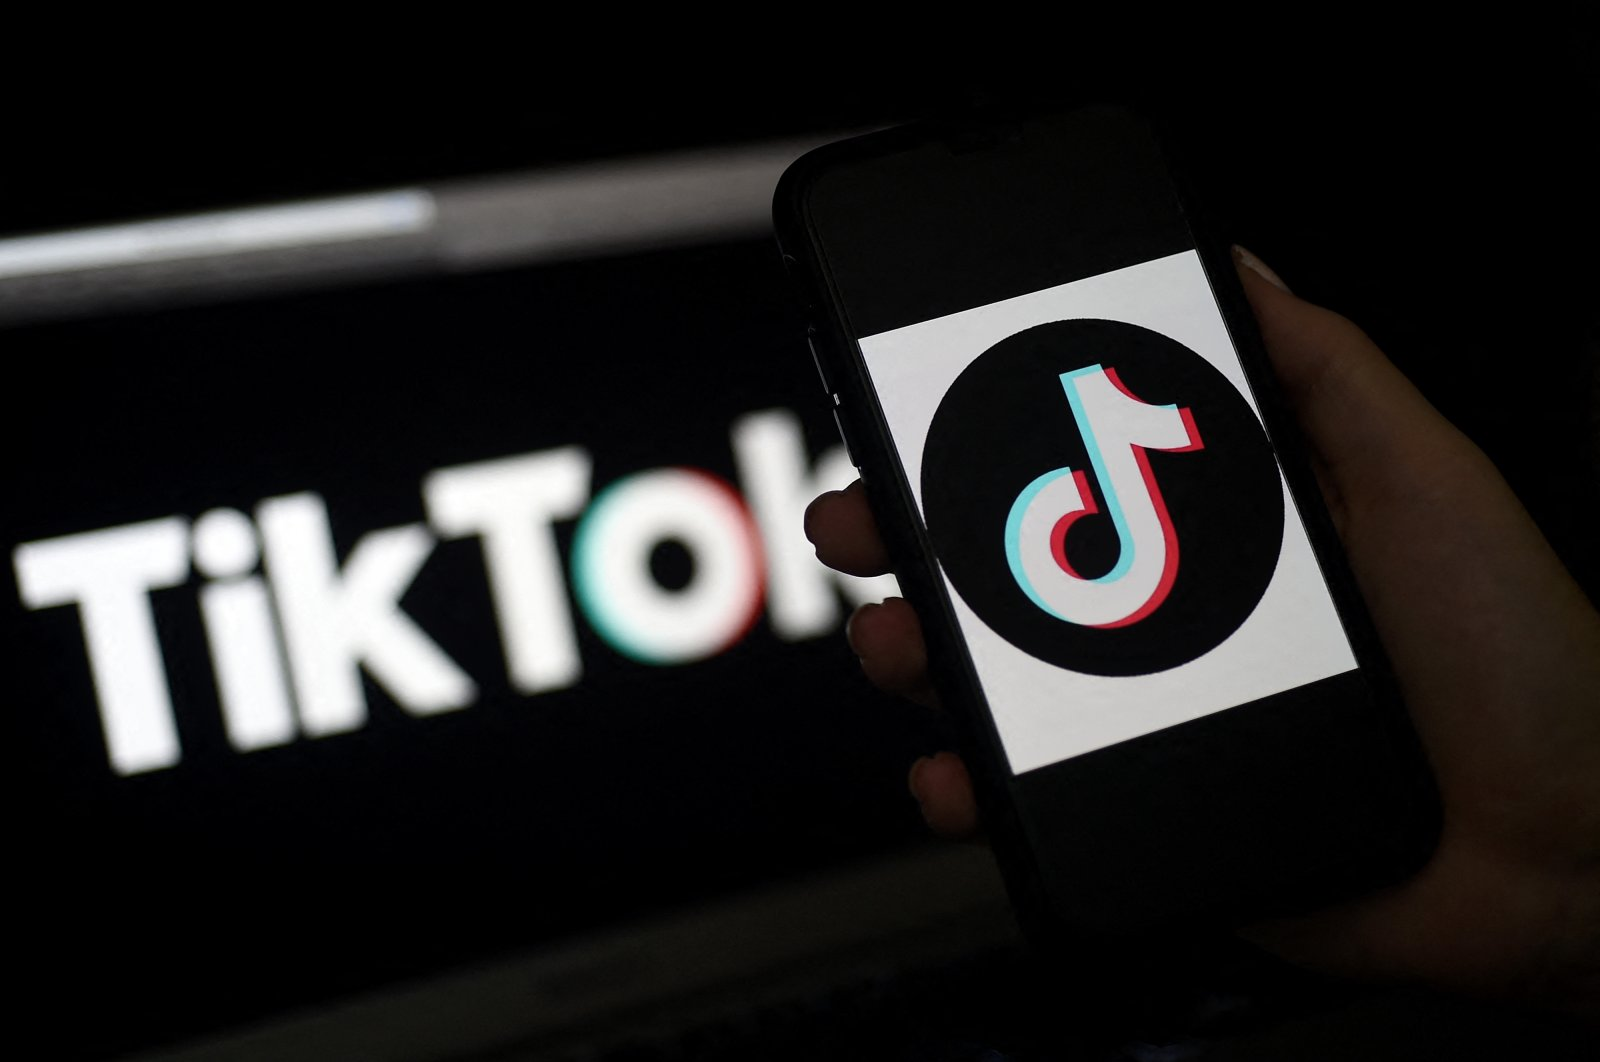 The TikTok logo is displayed on the screen of an iPhone on April 13, 2020, in Arlington, Virginia (AFP)